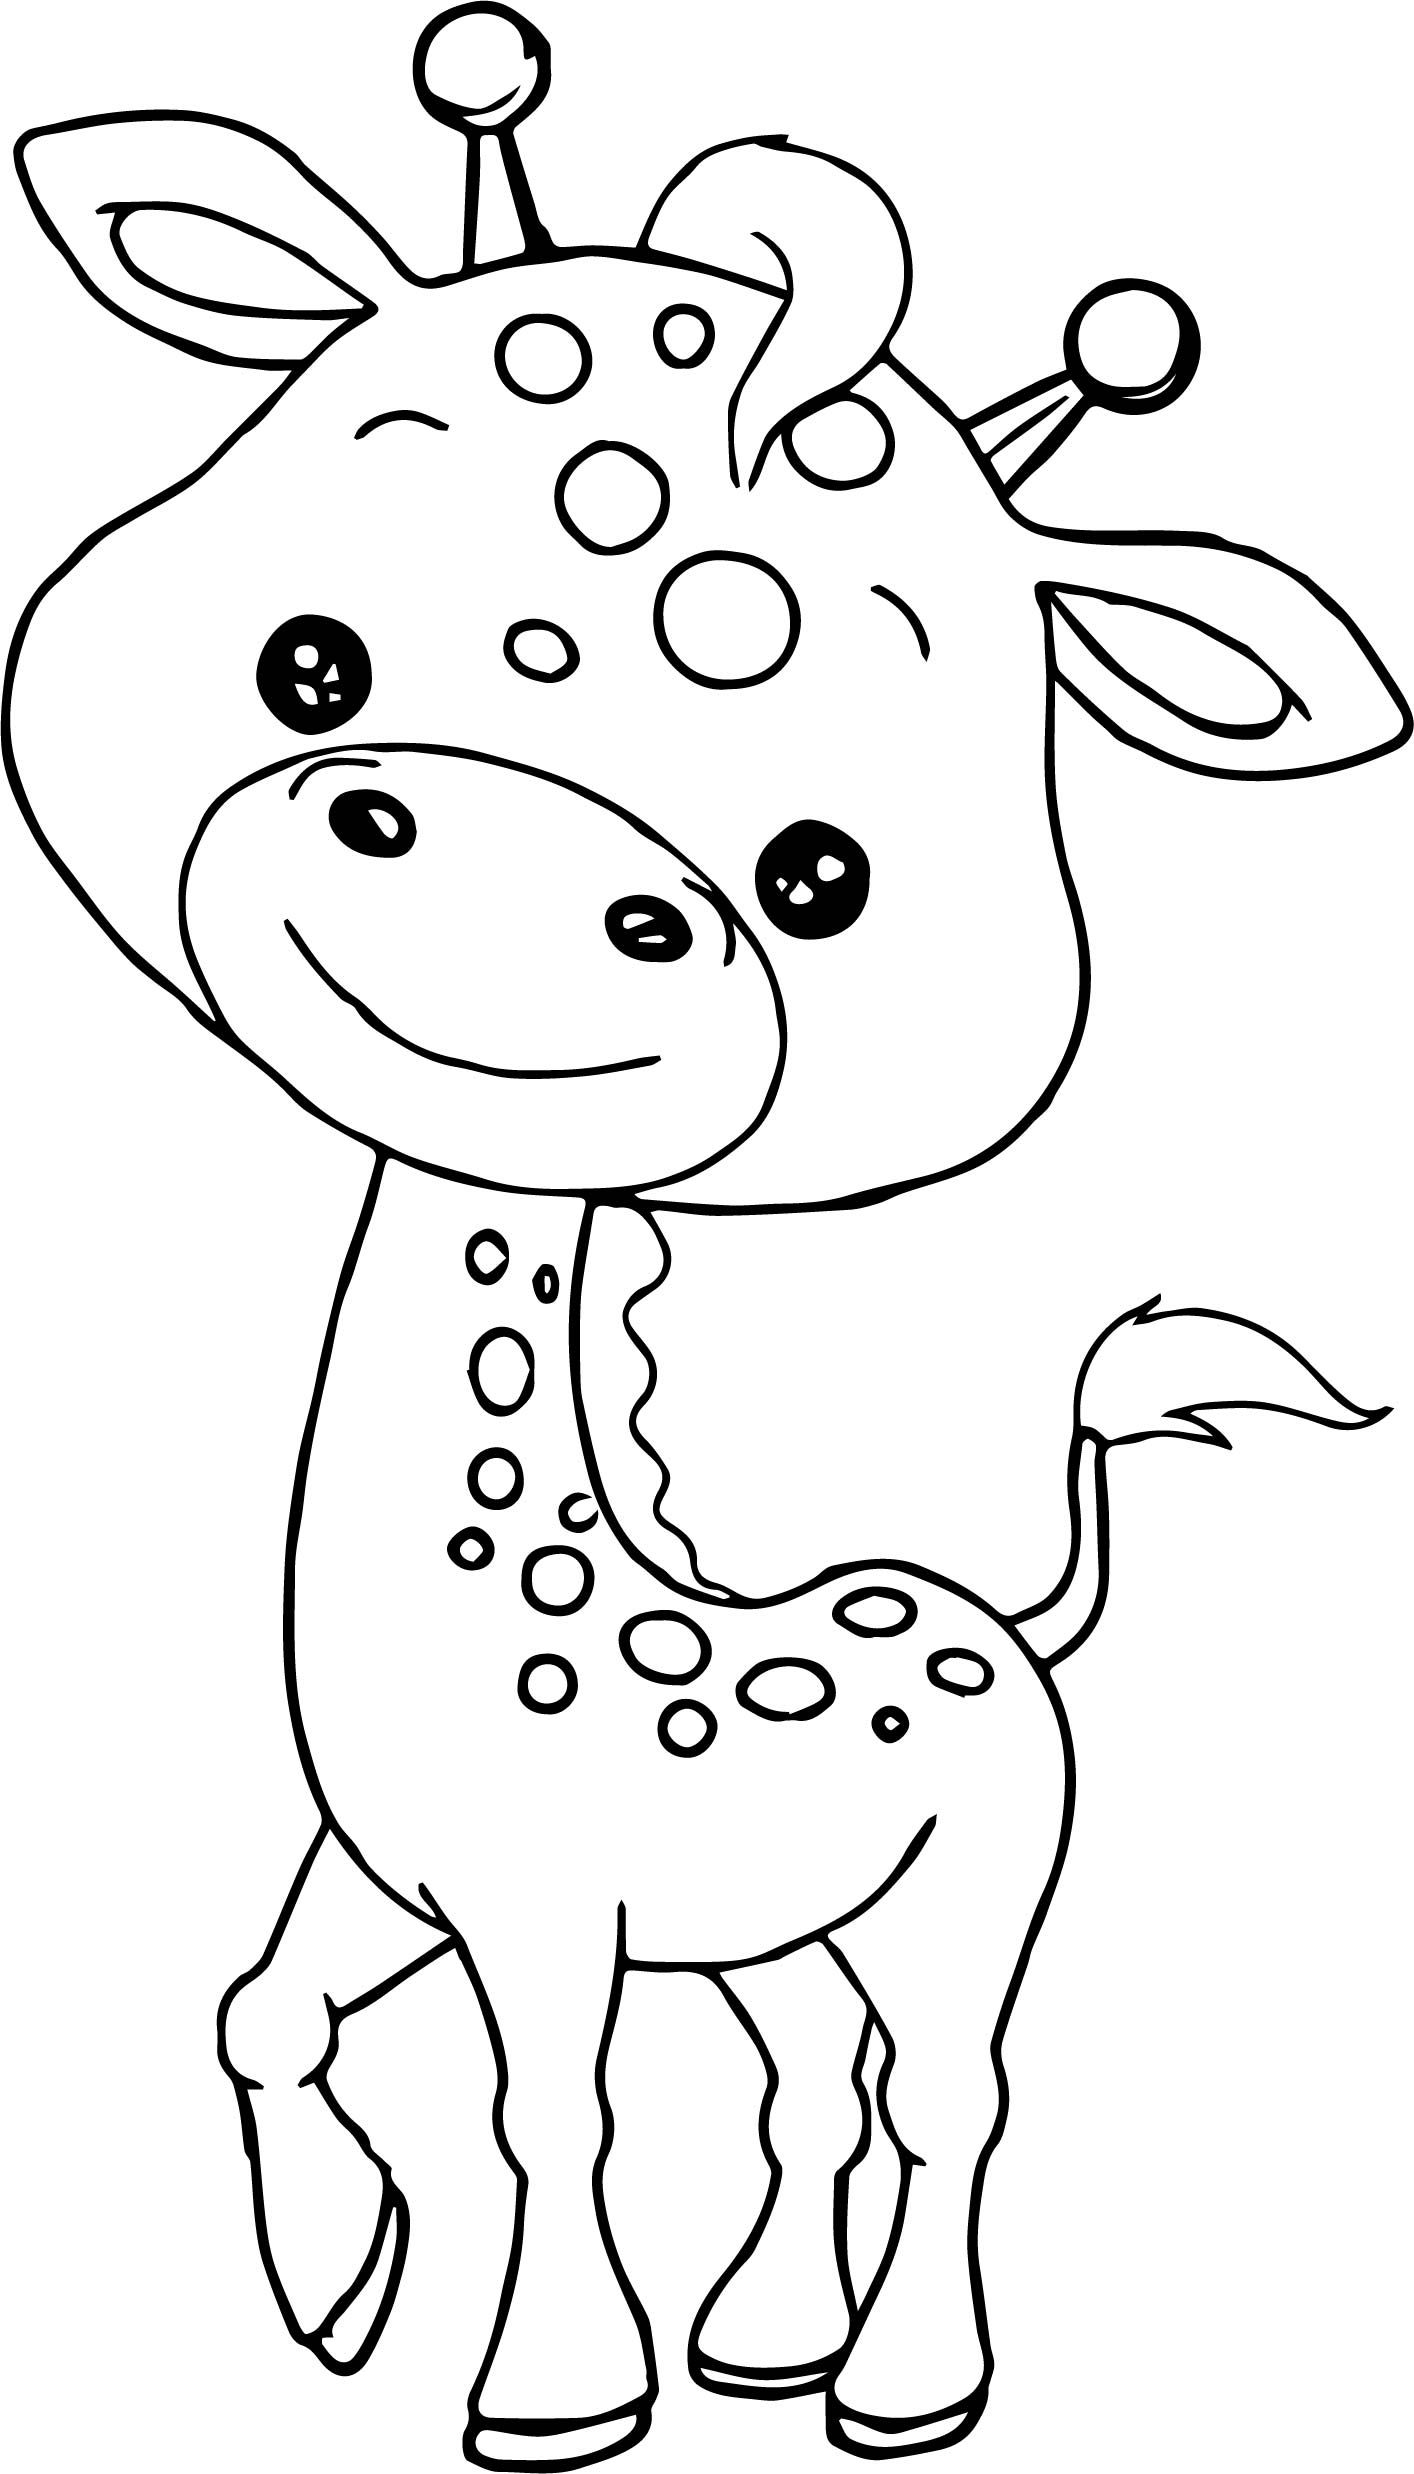 baby animals to color cute animals drawing at getdrawings free download to animals color baby